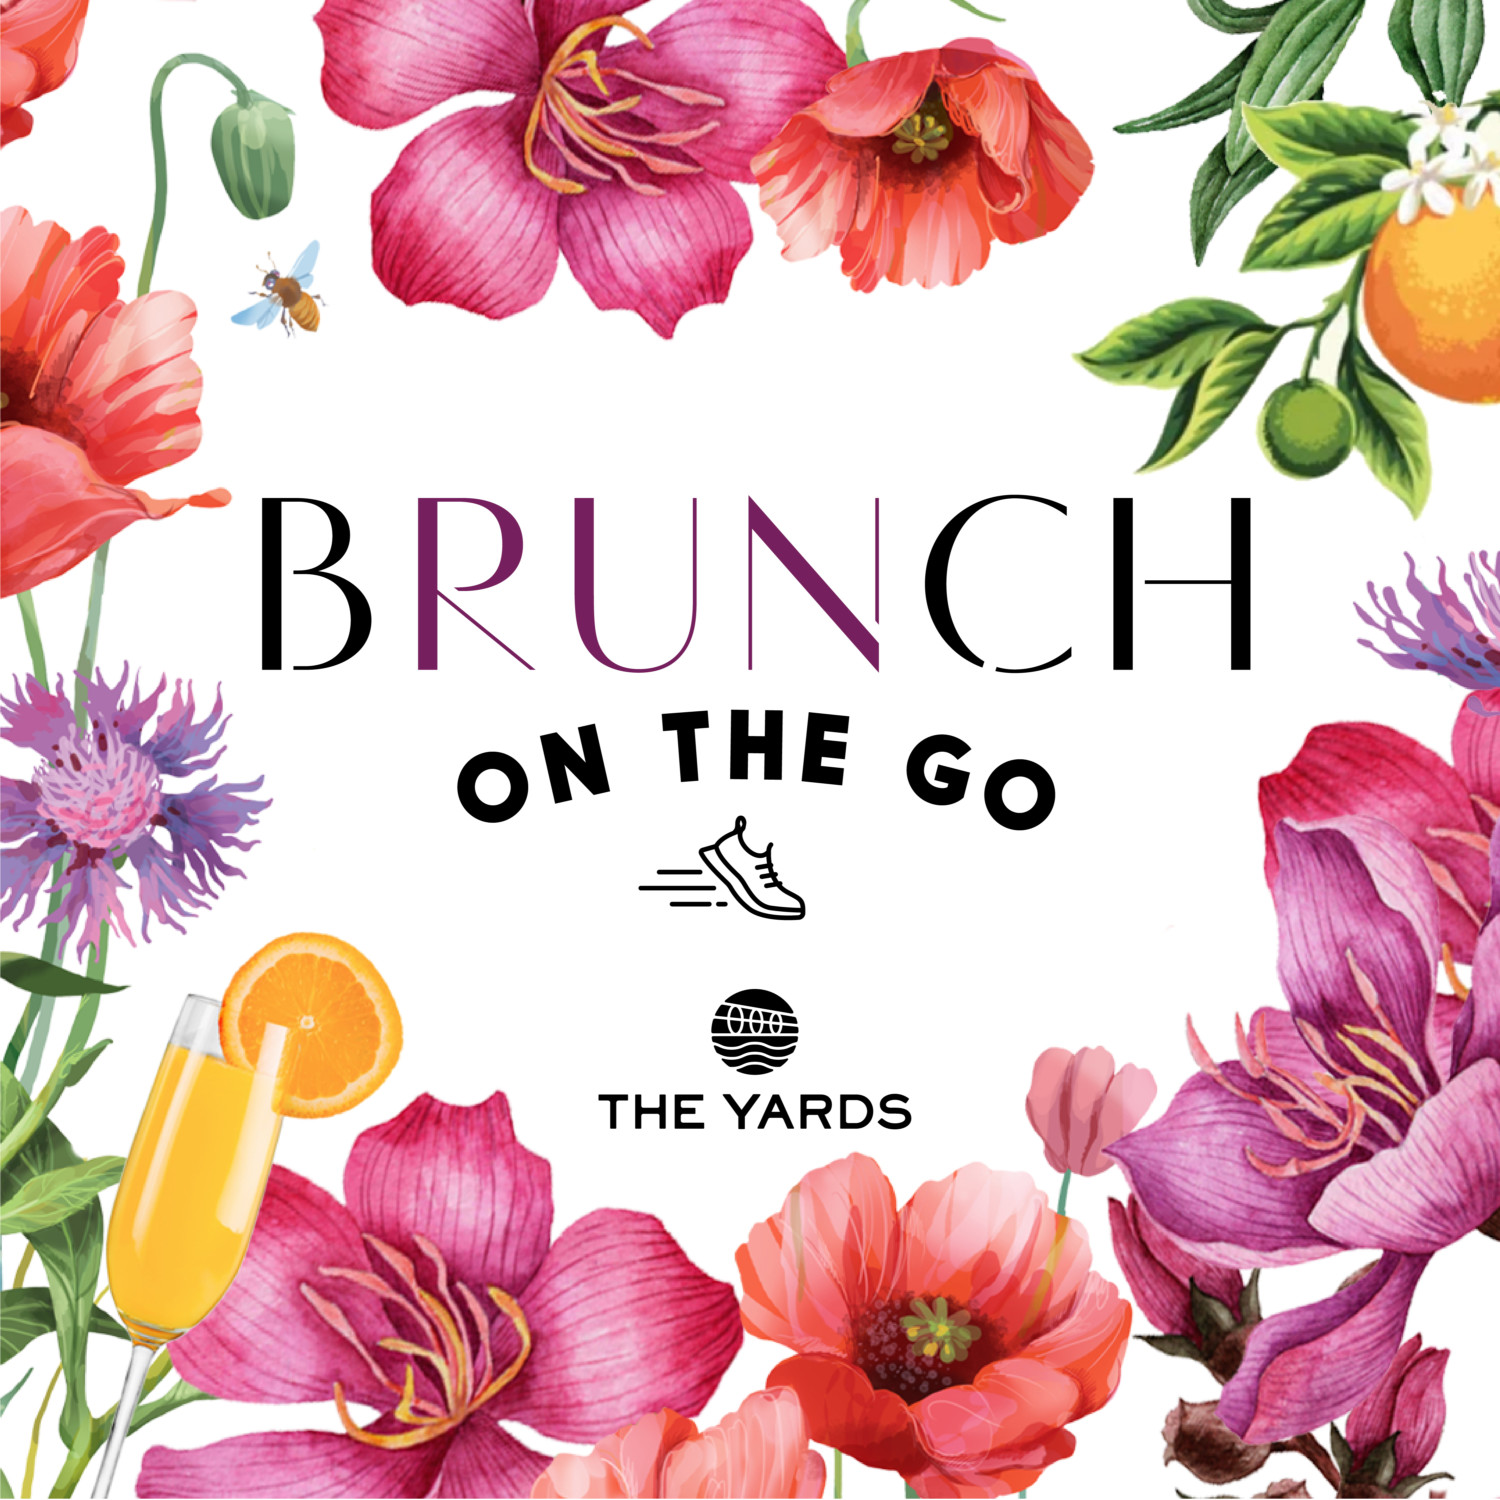 Brunch on the Go with The Yards